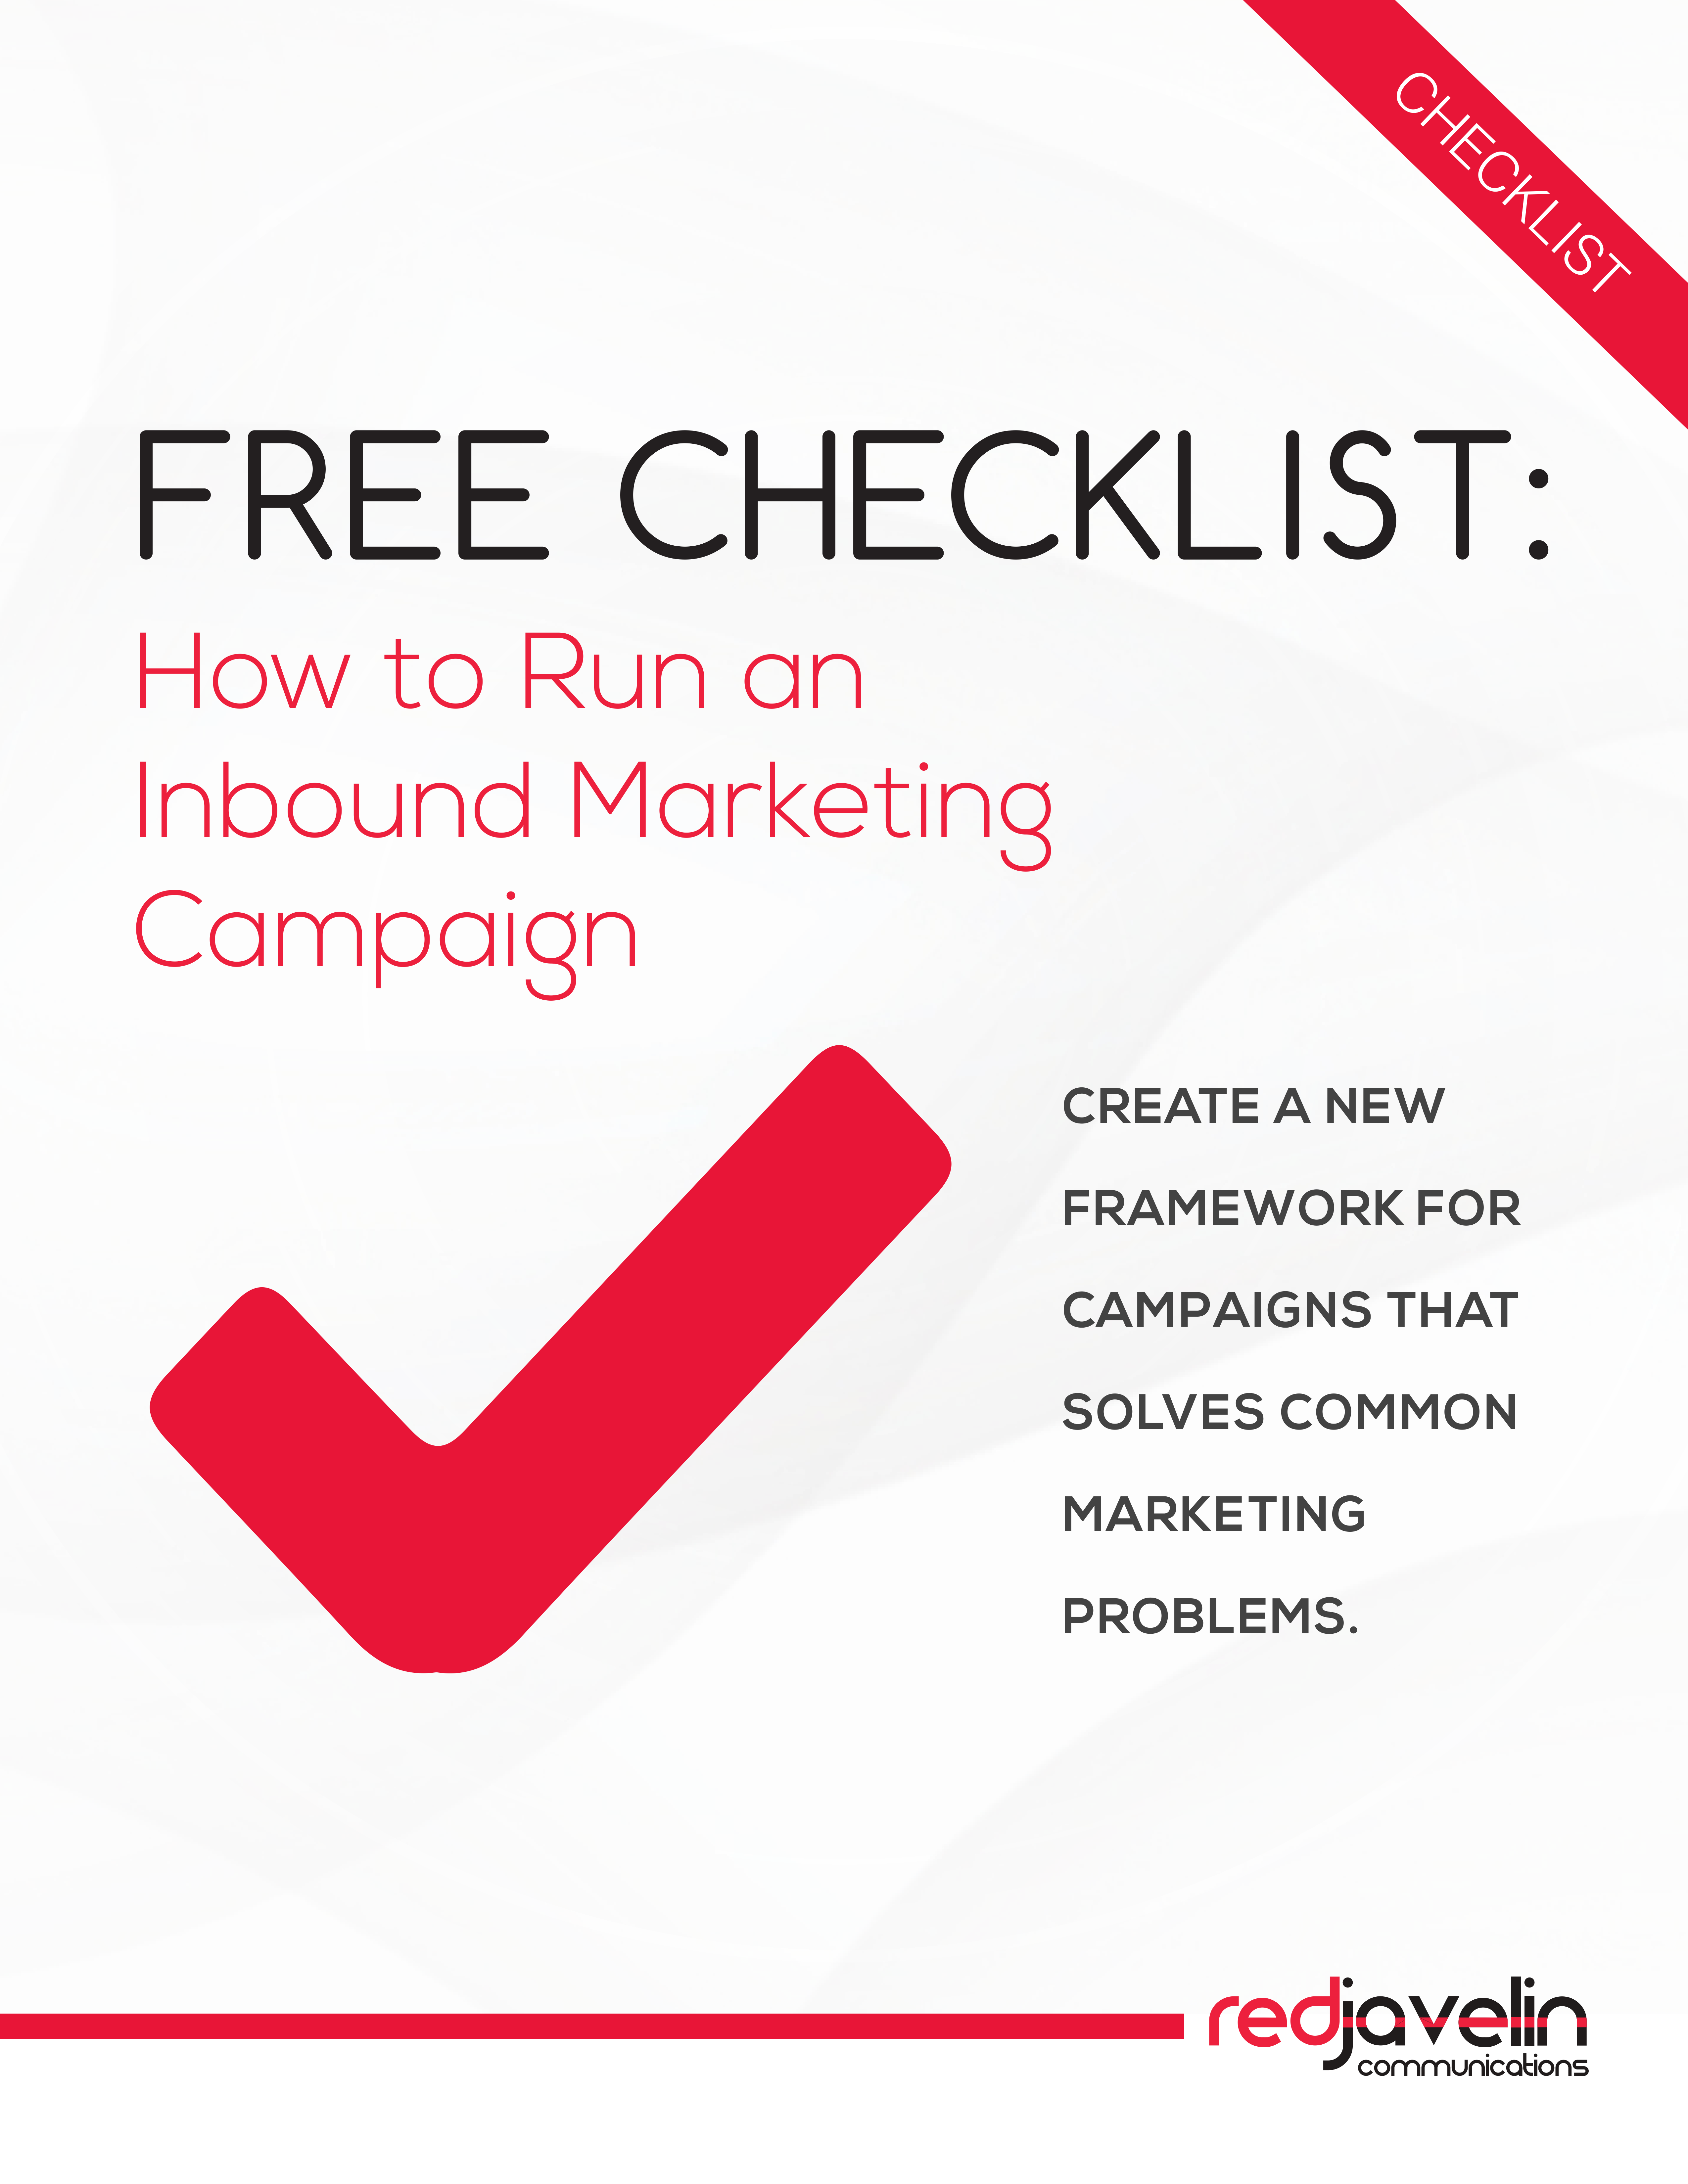 RLC_Inbound_Marketing_Campaign_Checklist_001.png